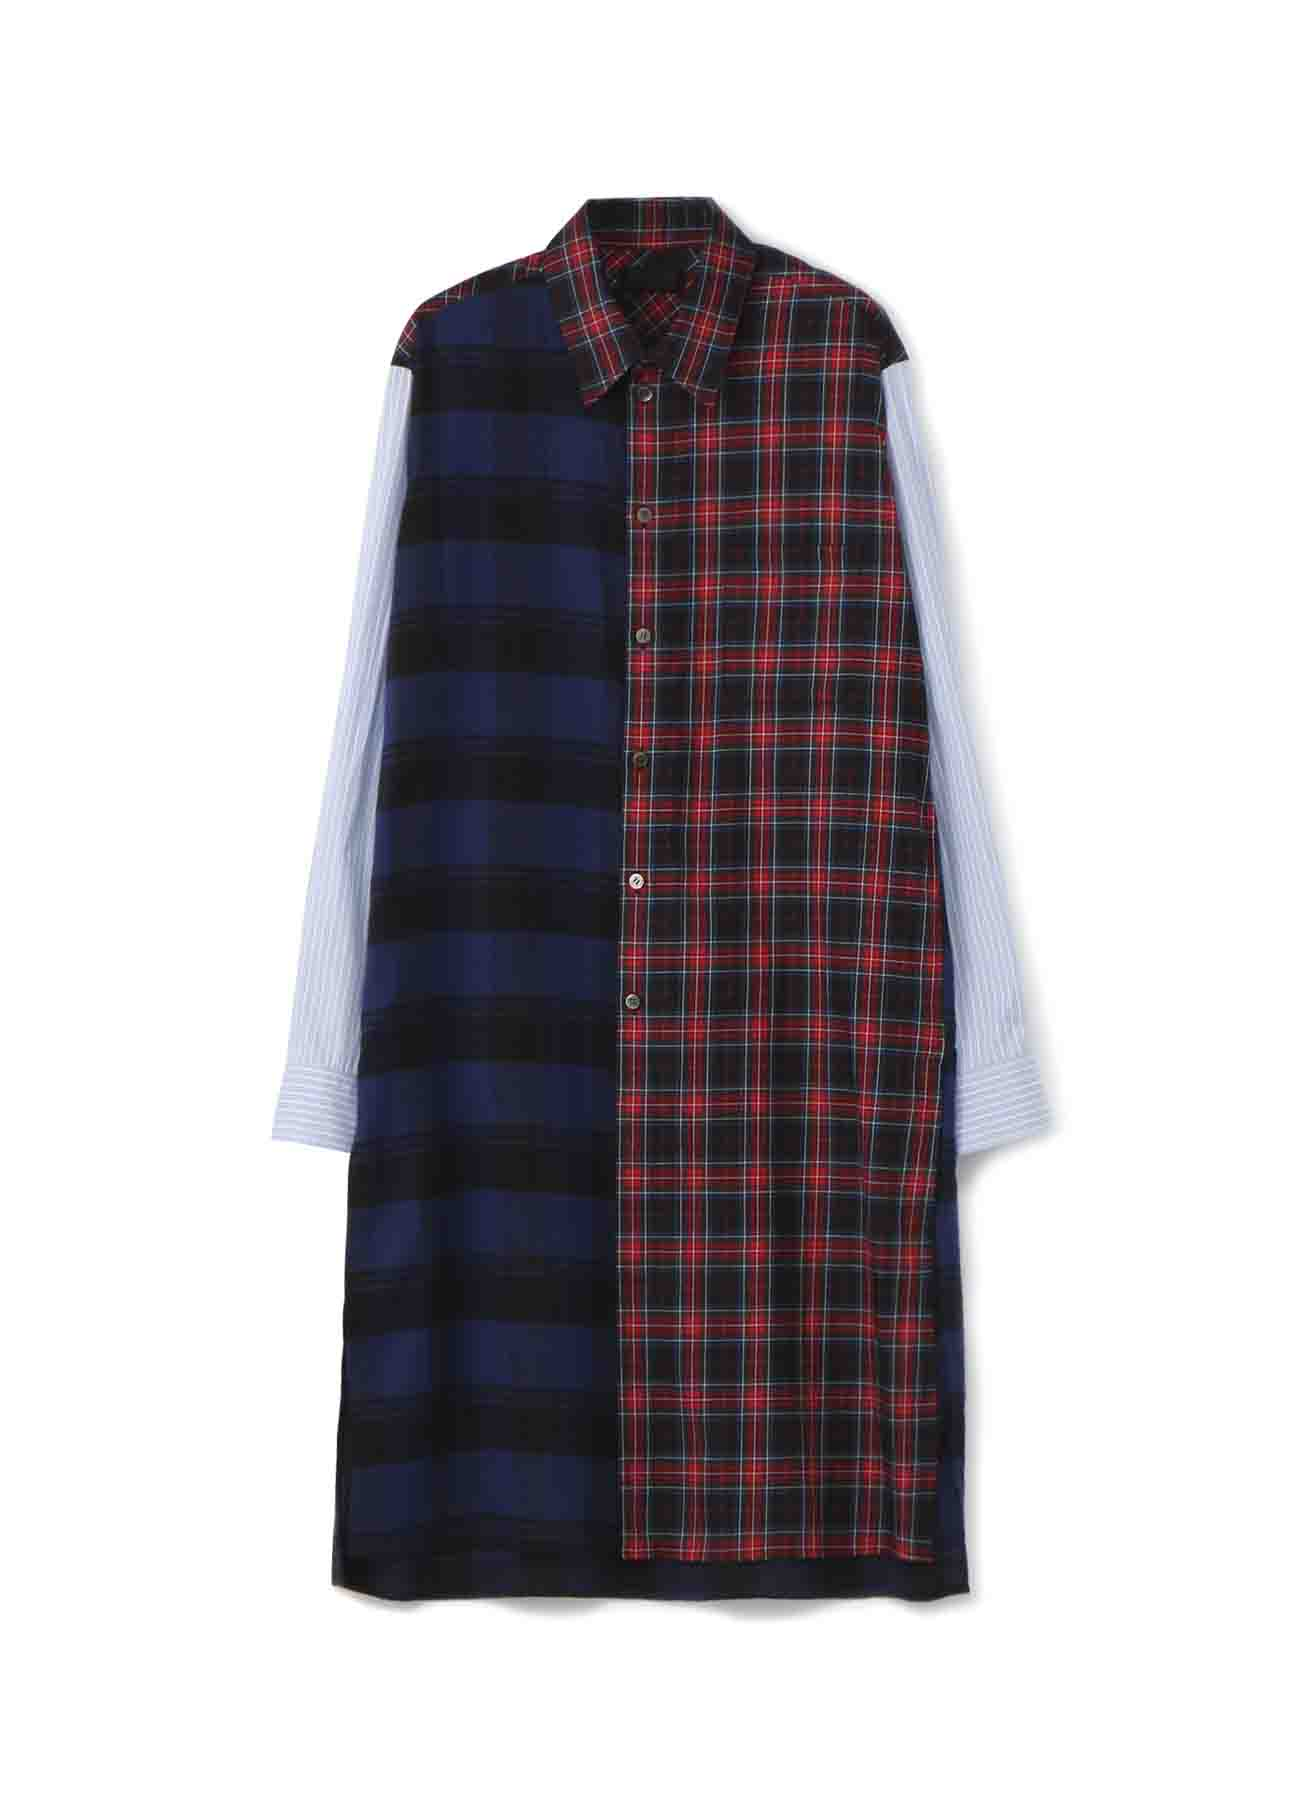 Check Tartan x Stripe x Crazy Panel Long Shirt